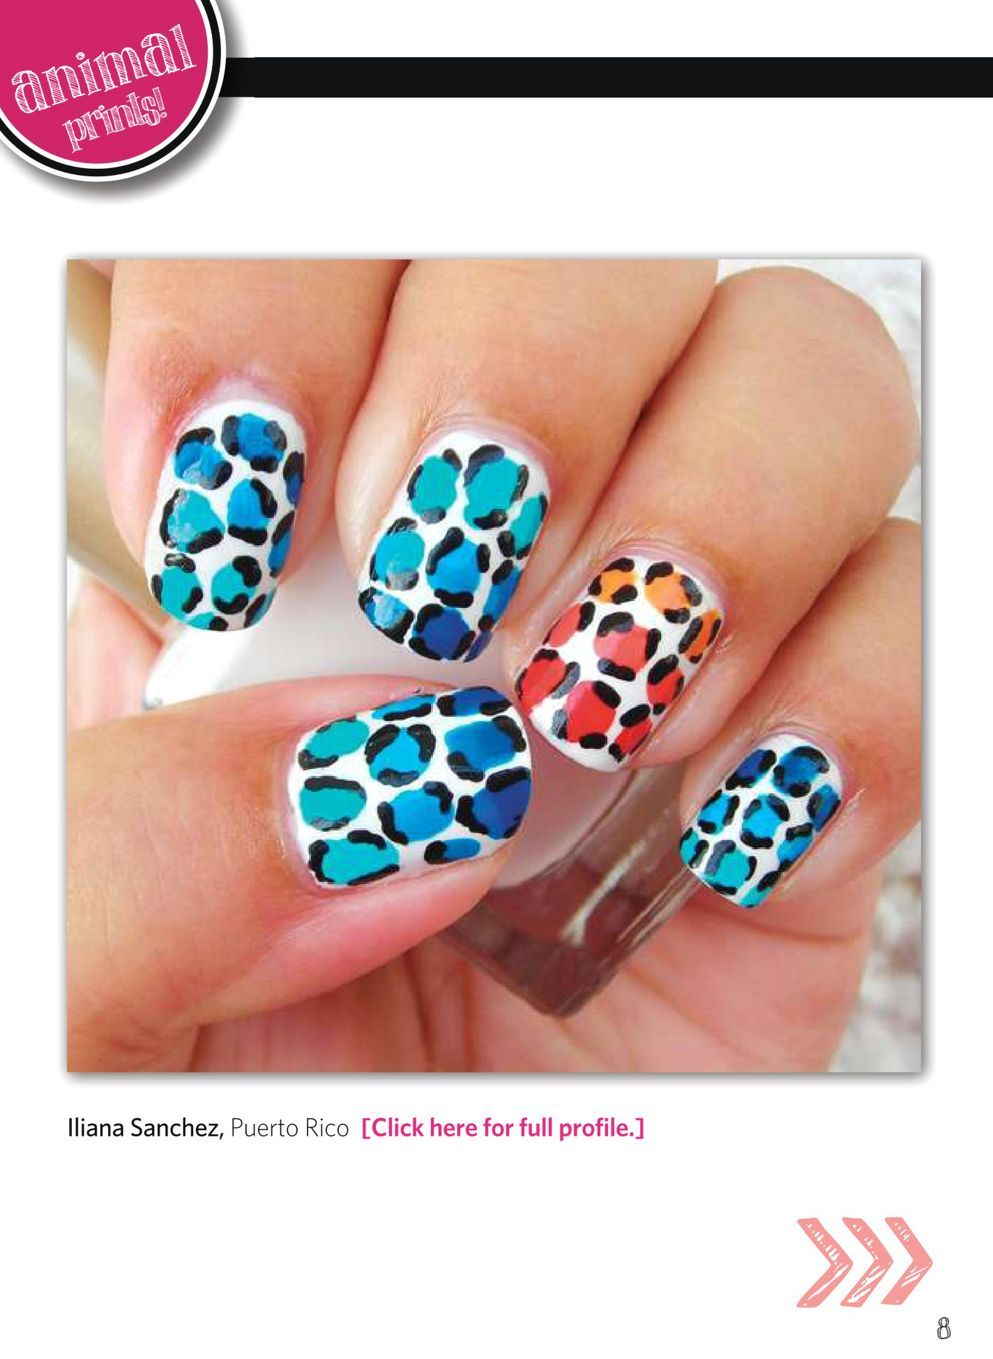 Pinterest Nail Art Gallery Pictures to Pin on Pinterest - PinMash